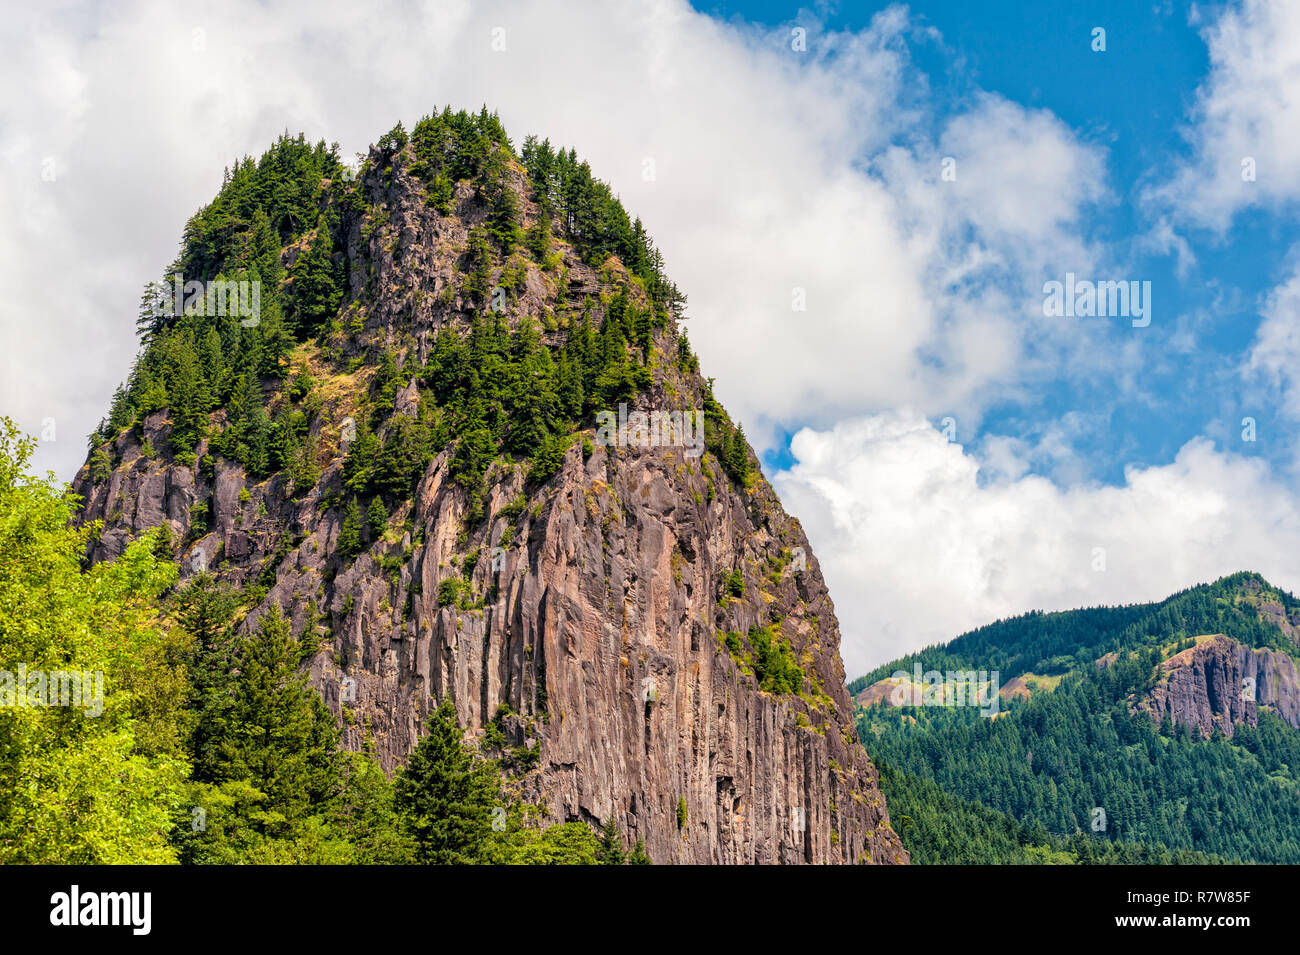 Beacon Rock on the Washington side of the Columbia River Gorge.  A trail winds it's way up to the basalt rock top. - Stock Image